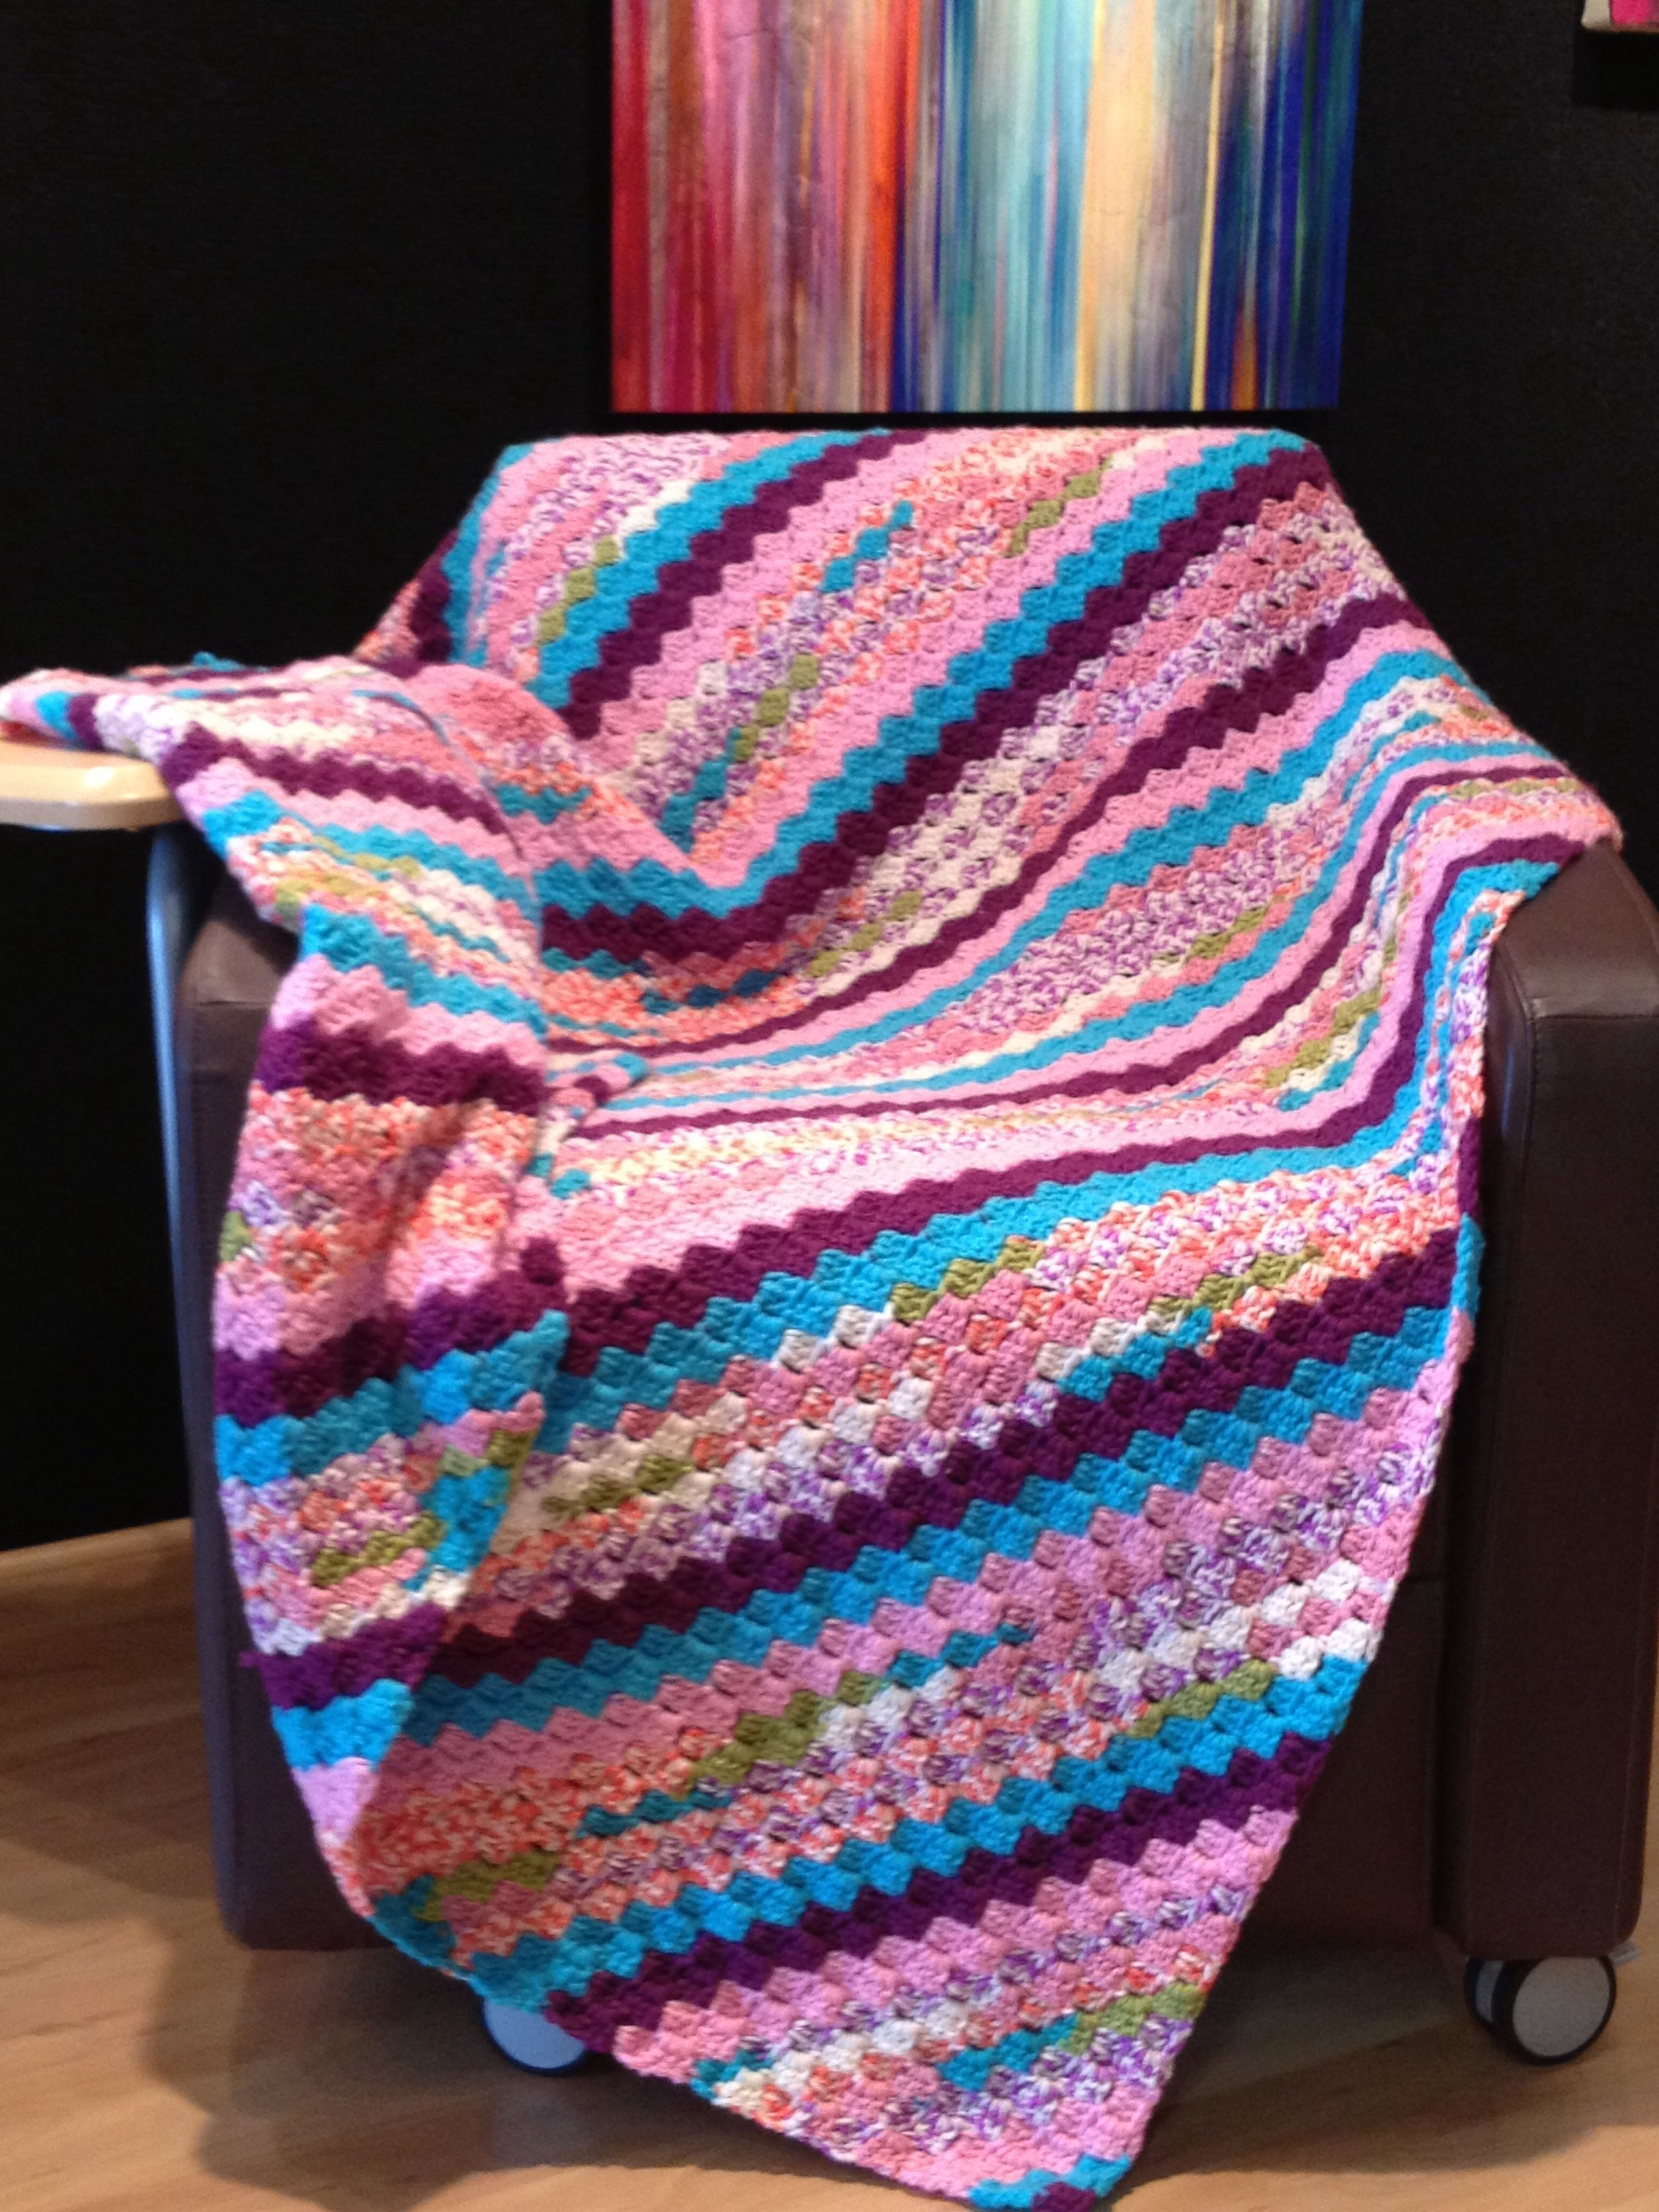 Pin by Catherine Hershberger on Comfort and Joy Crochet by